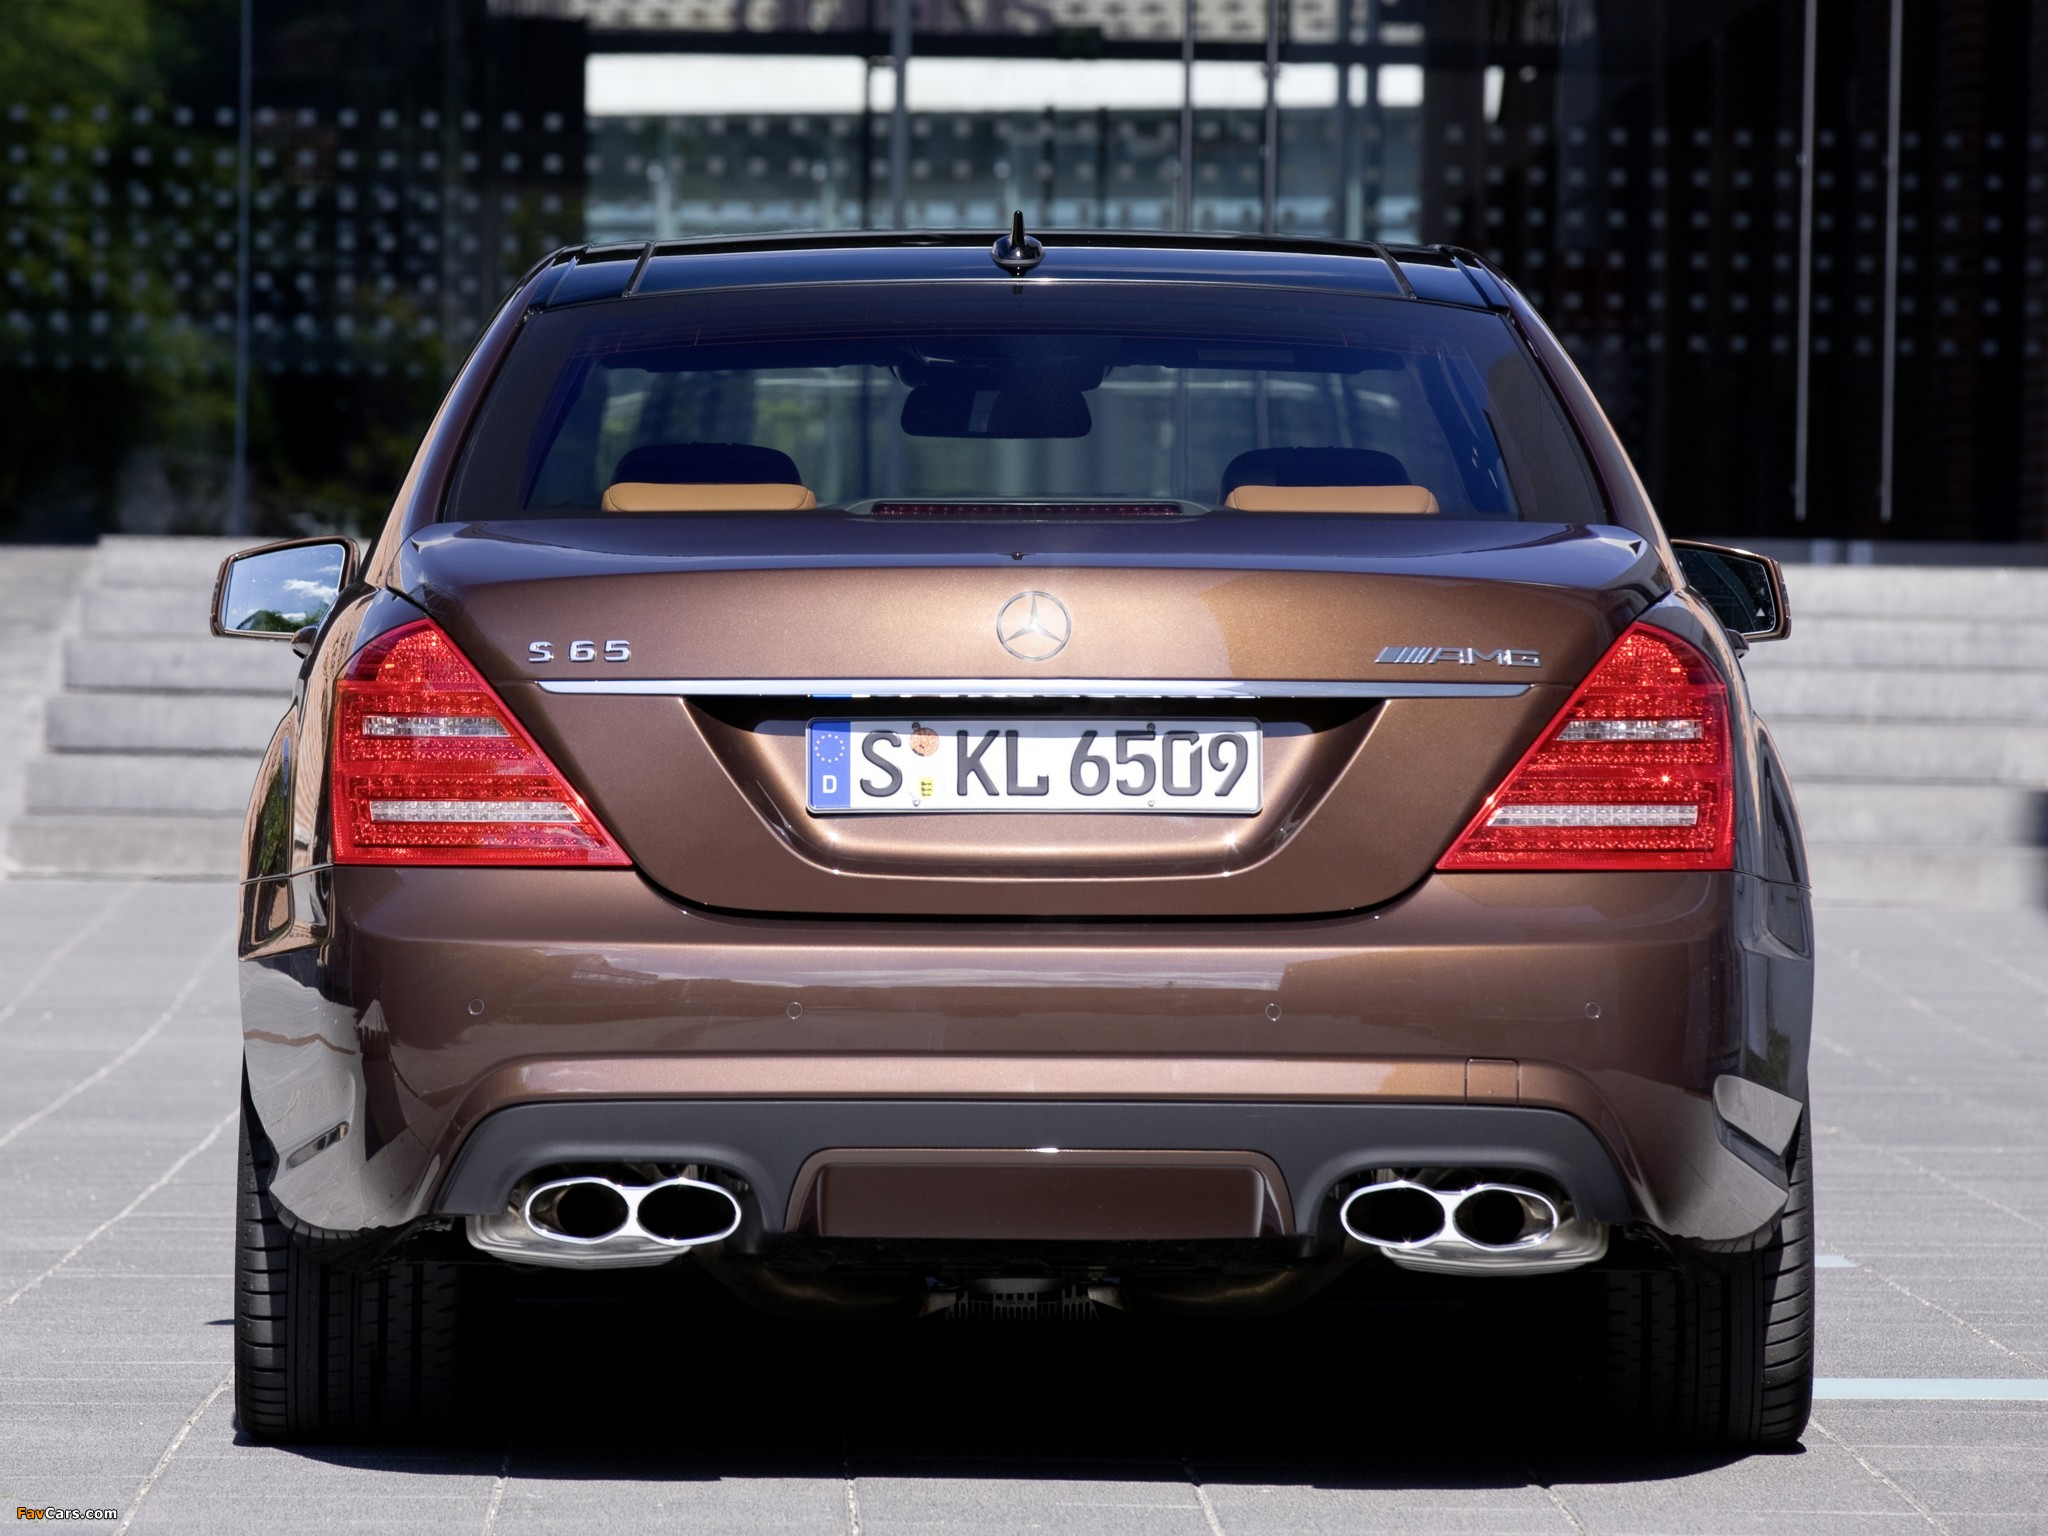 Mercedes-Benz S 65 AMG (W221) 2010–13 images (2048 x 1536)